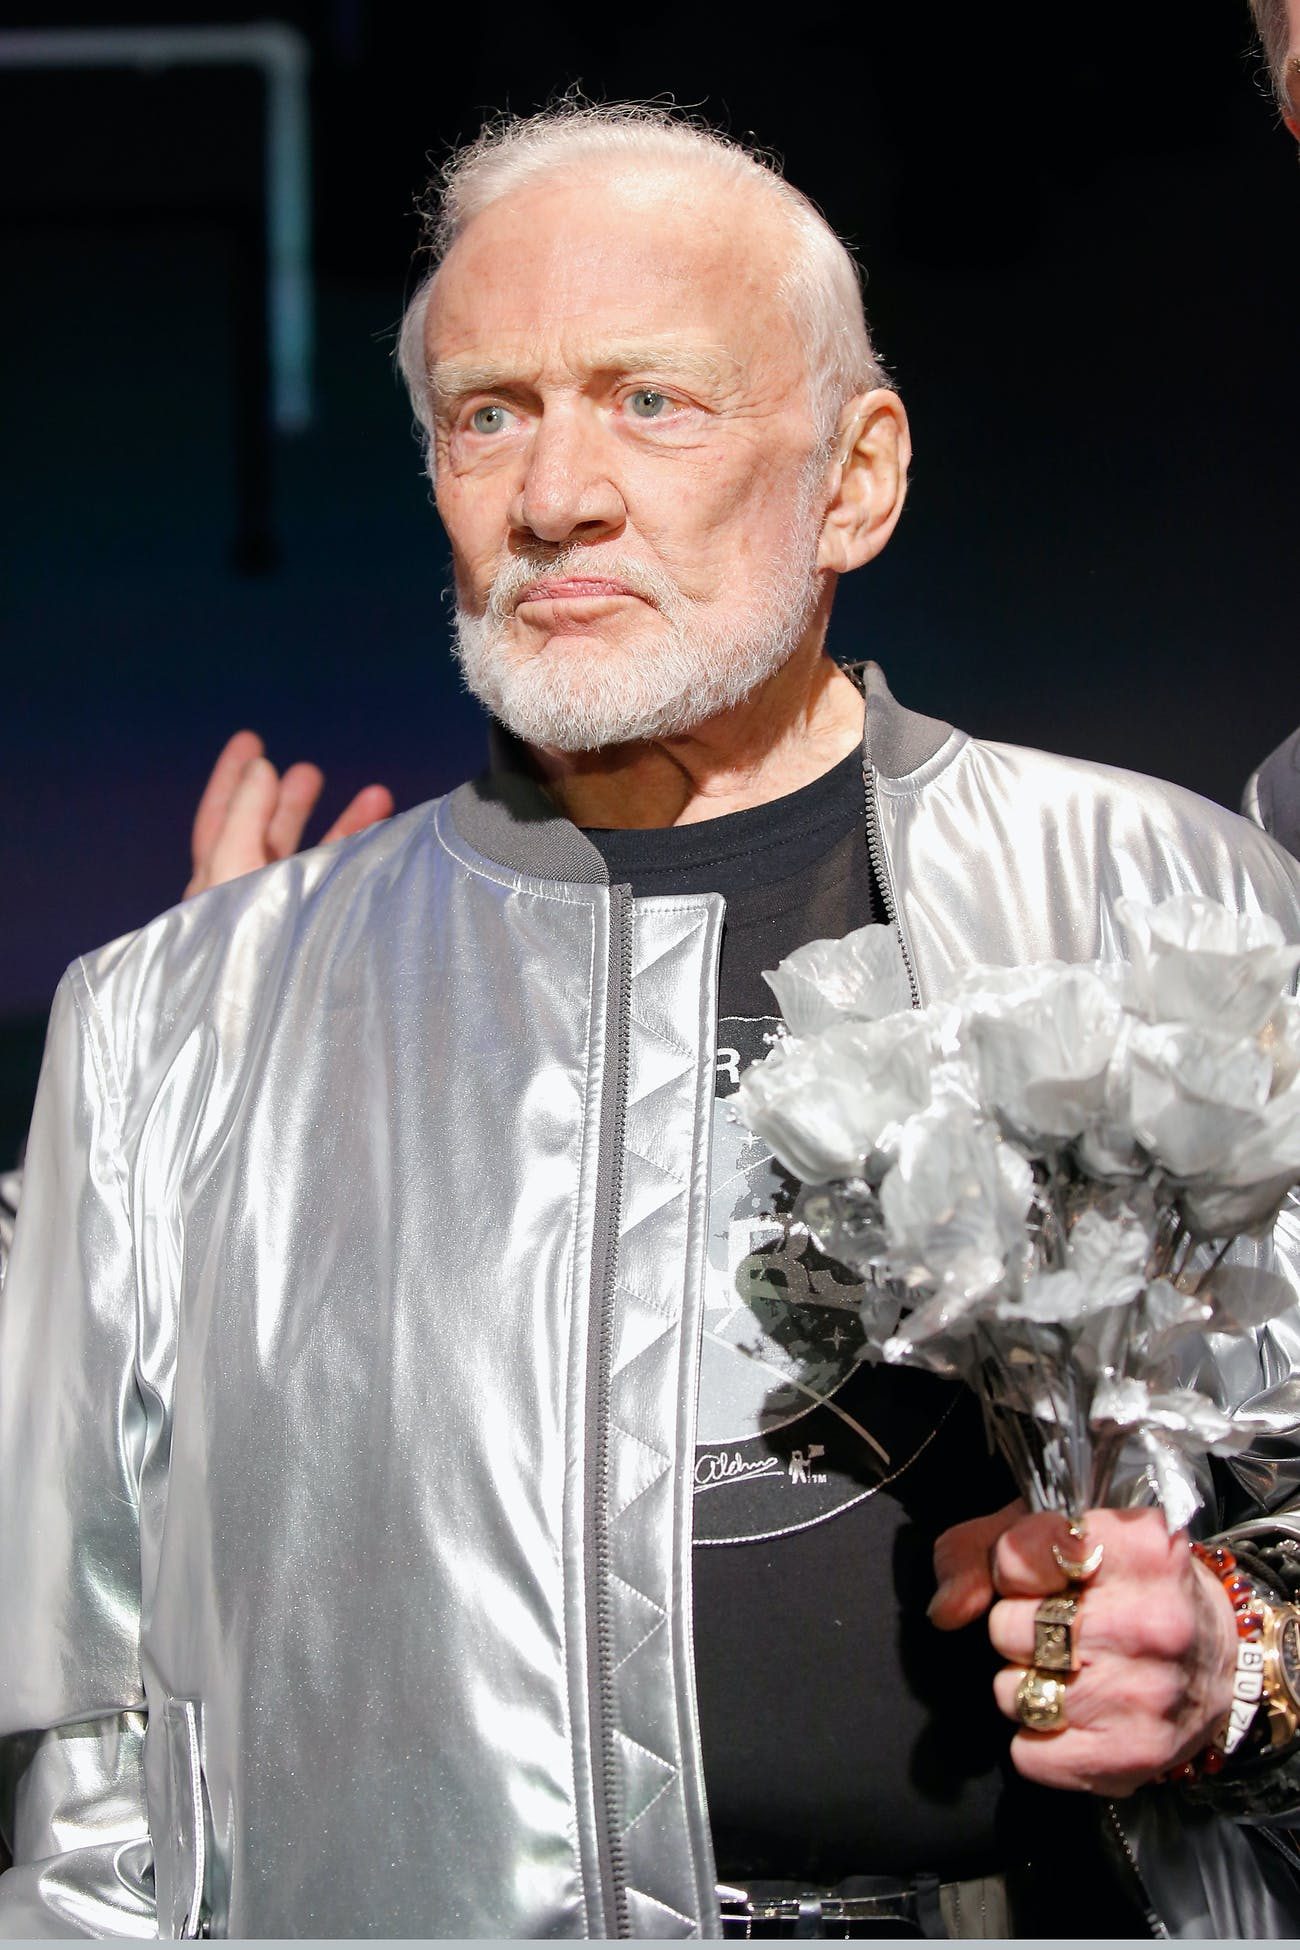 Buzz Aldrin poses on the runway at the Nick Graham NYFW Men's F/W '17 show on January 31, 2017.